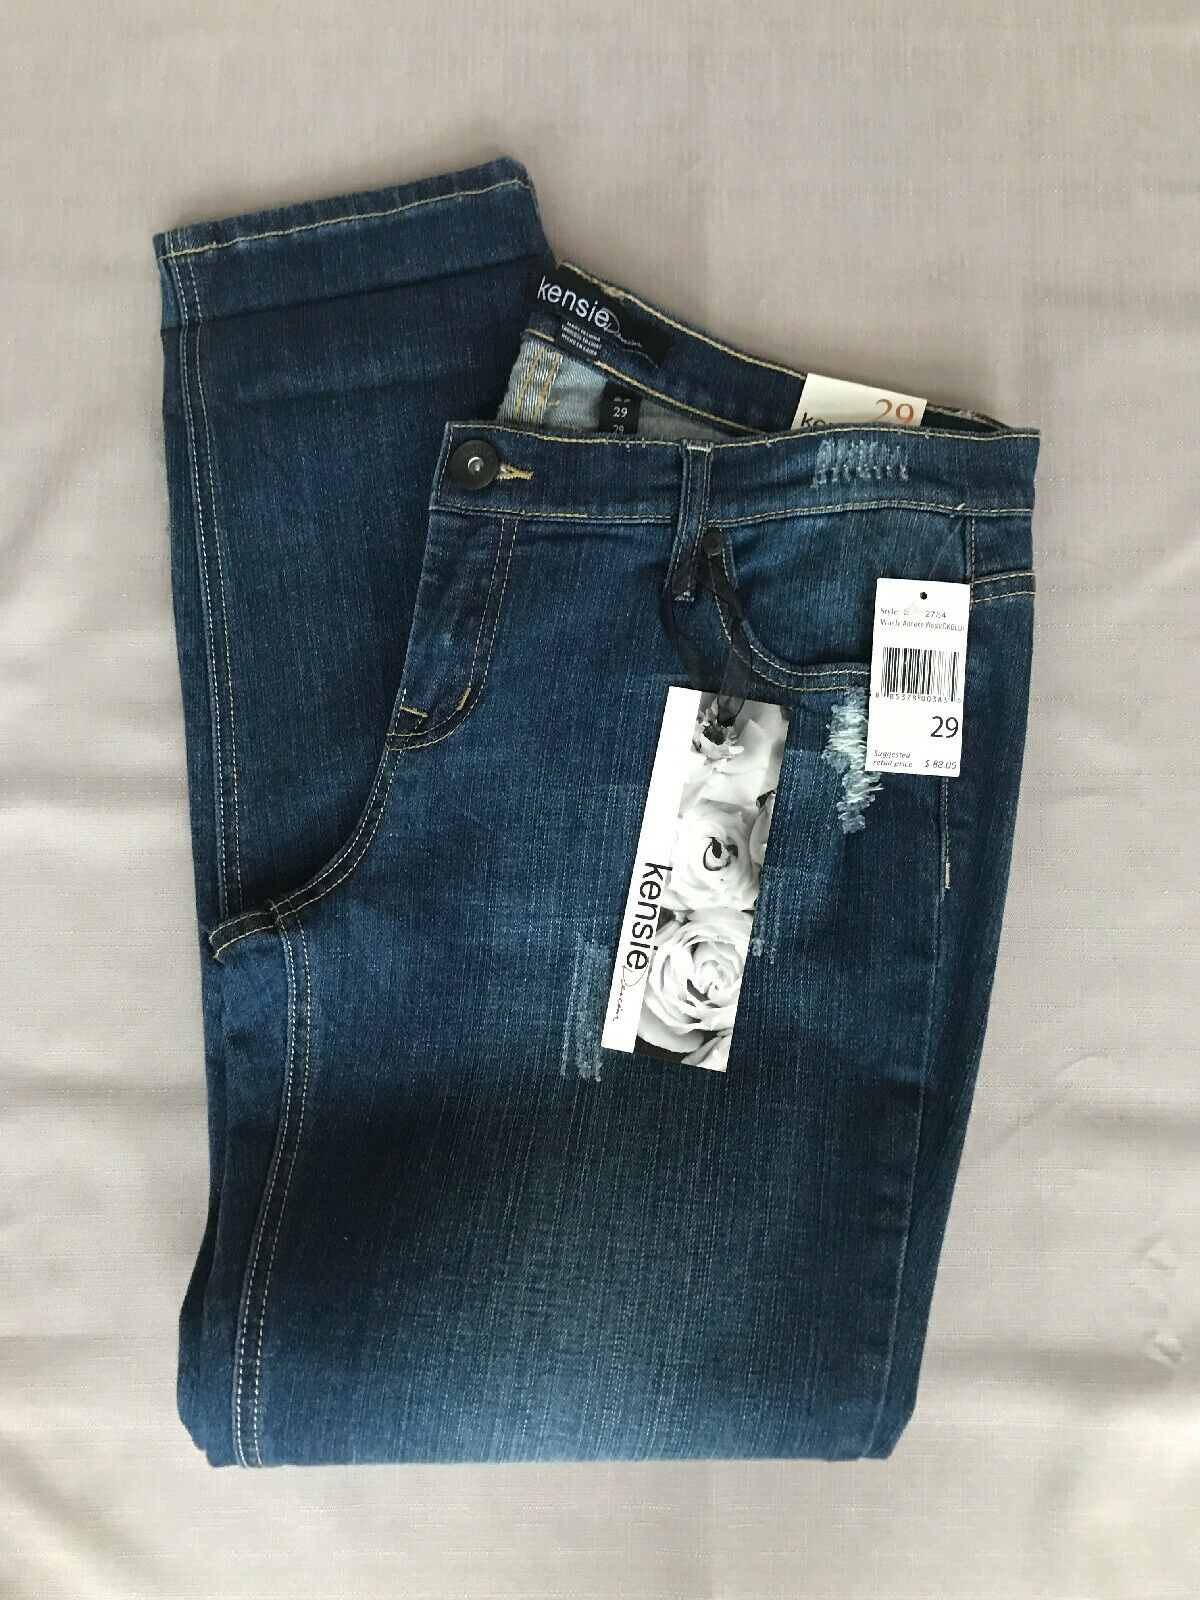 NWT Kensie Low rise, Straight Leg, distressed, bluee jeans, size 29